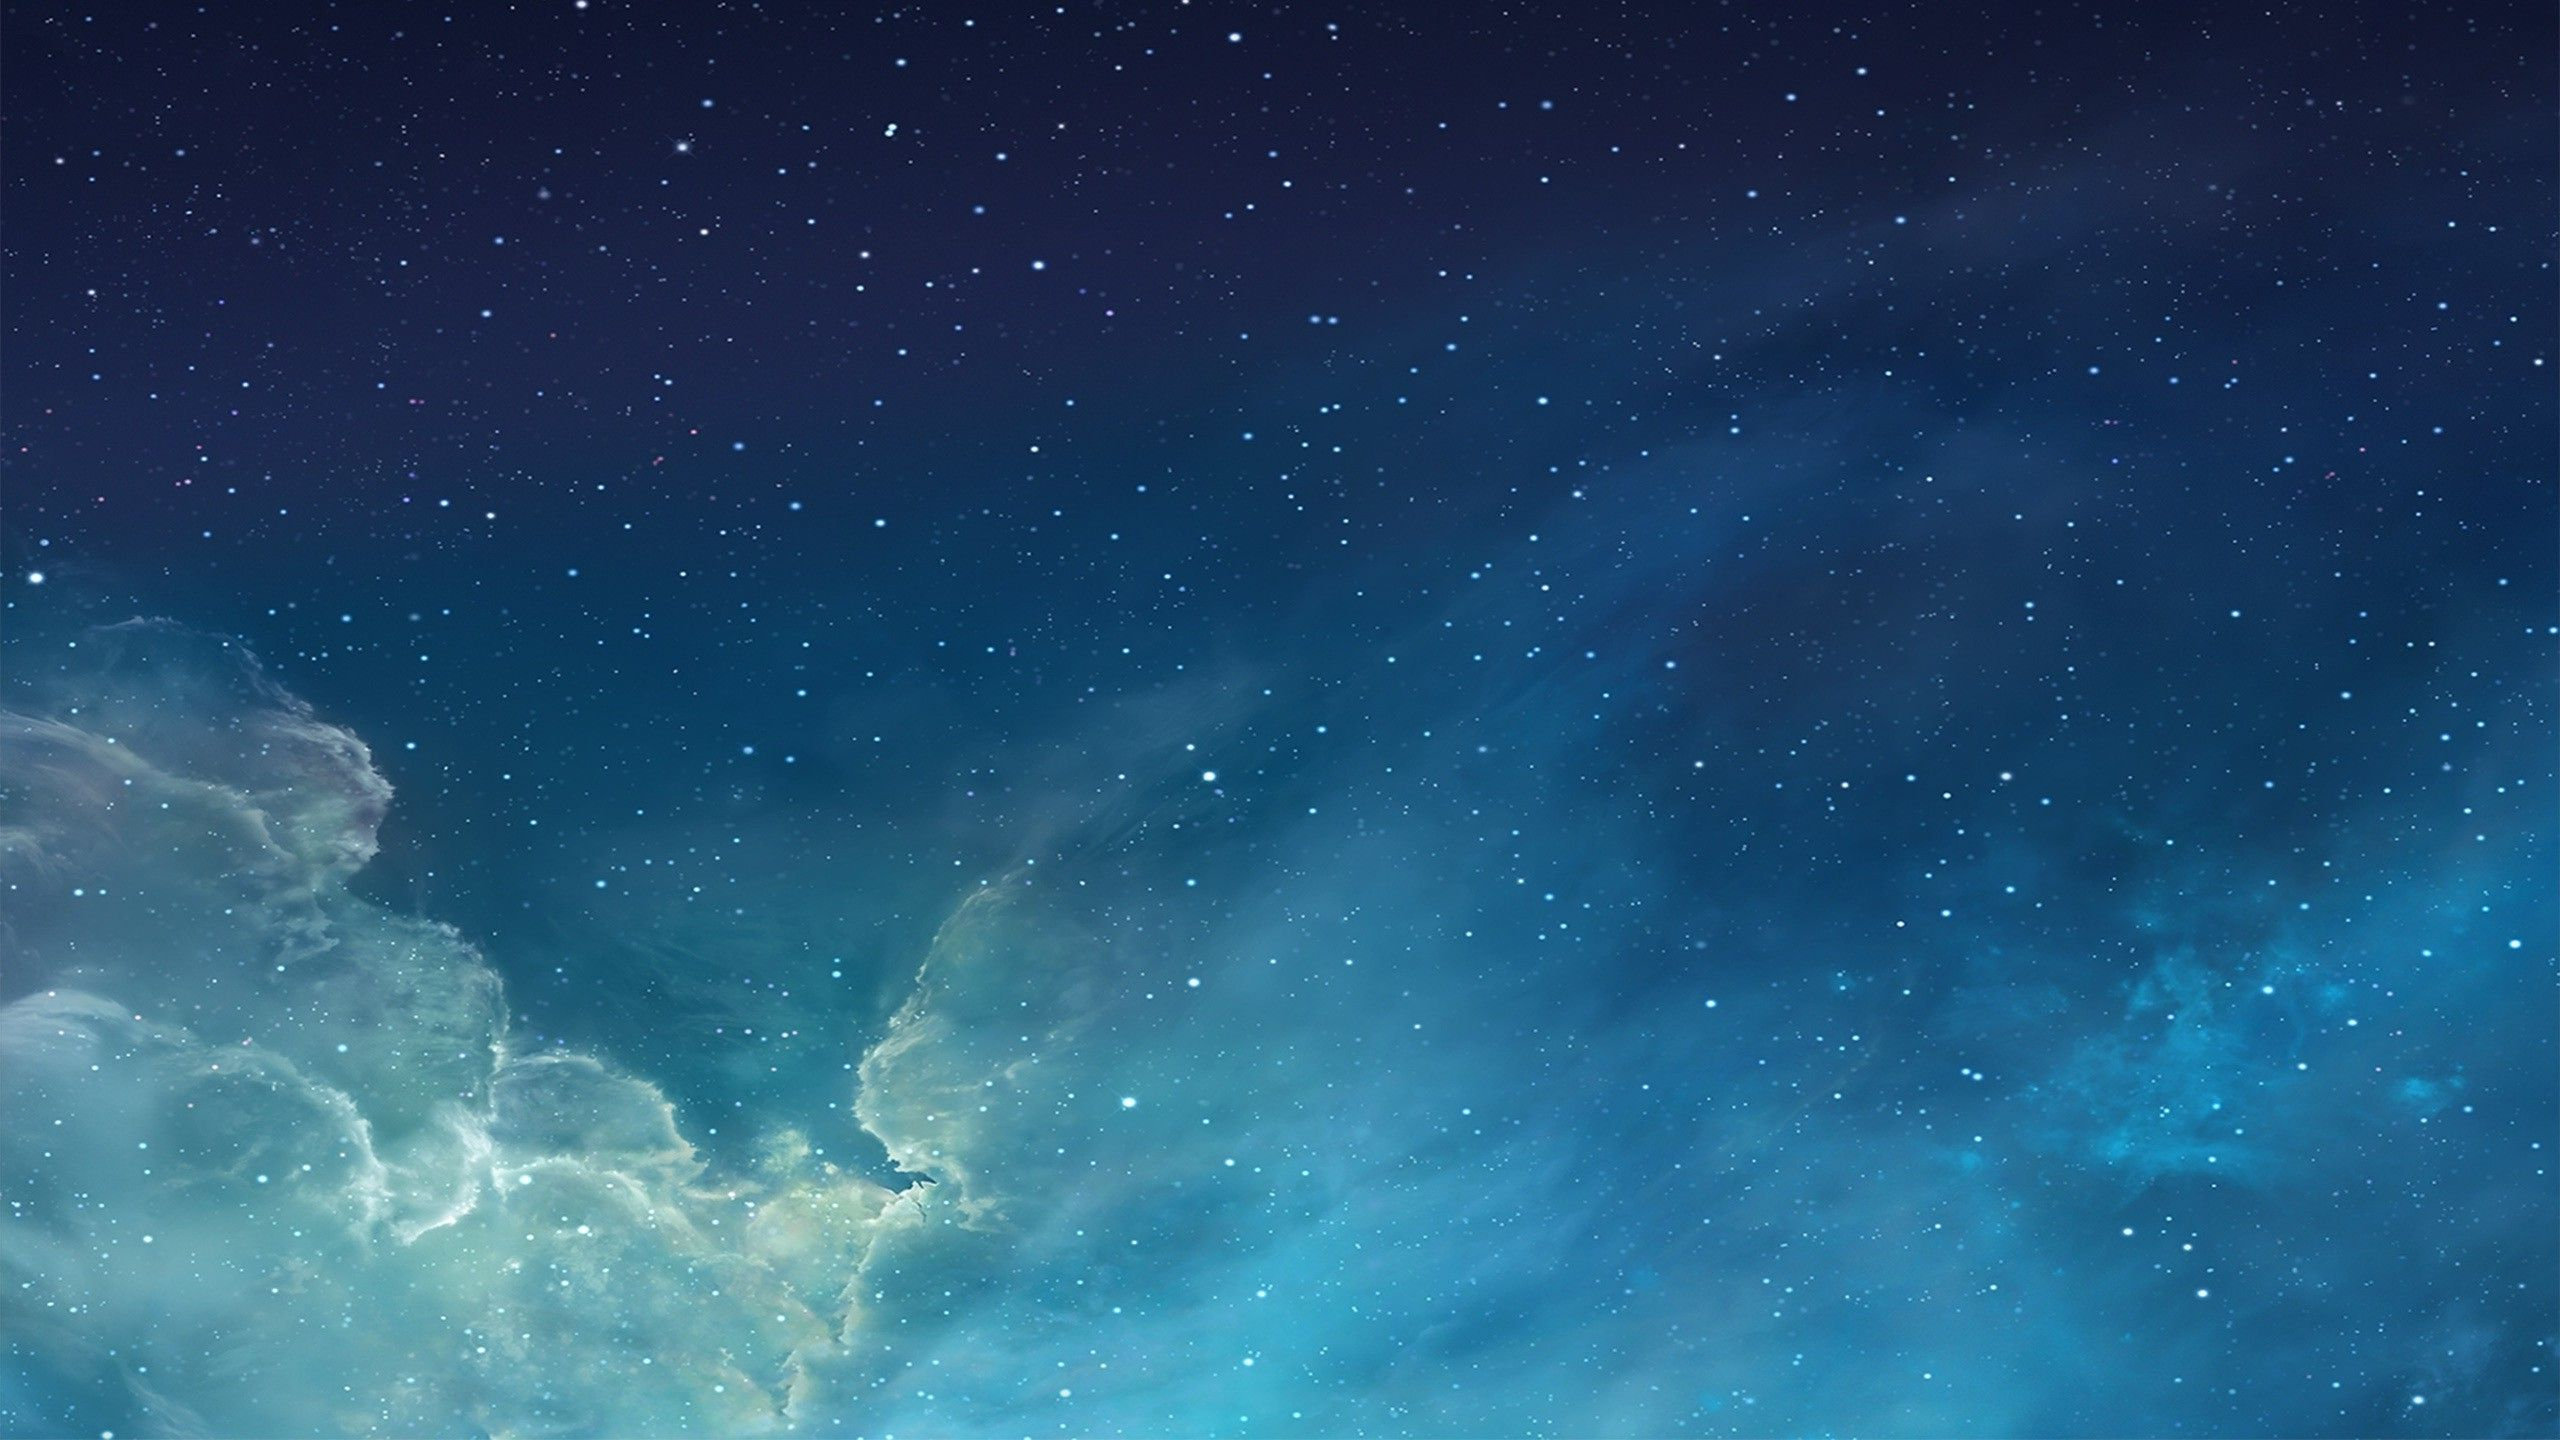 Star Sky Wallpapers Top Free Star Sky Backgrounds Wallpaperaccess